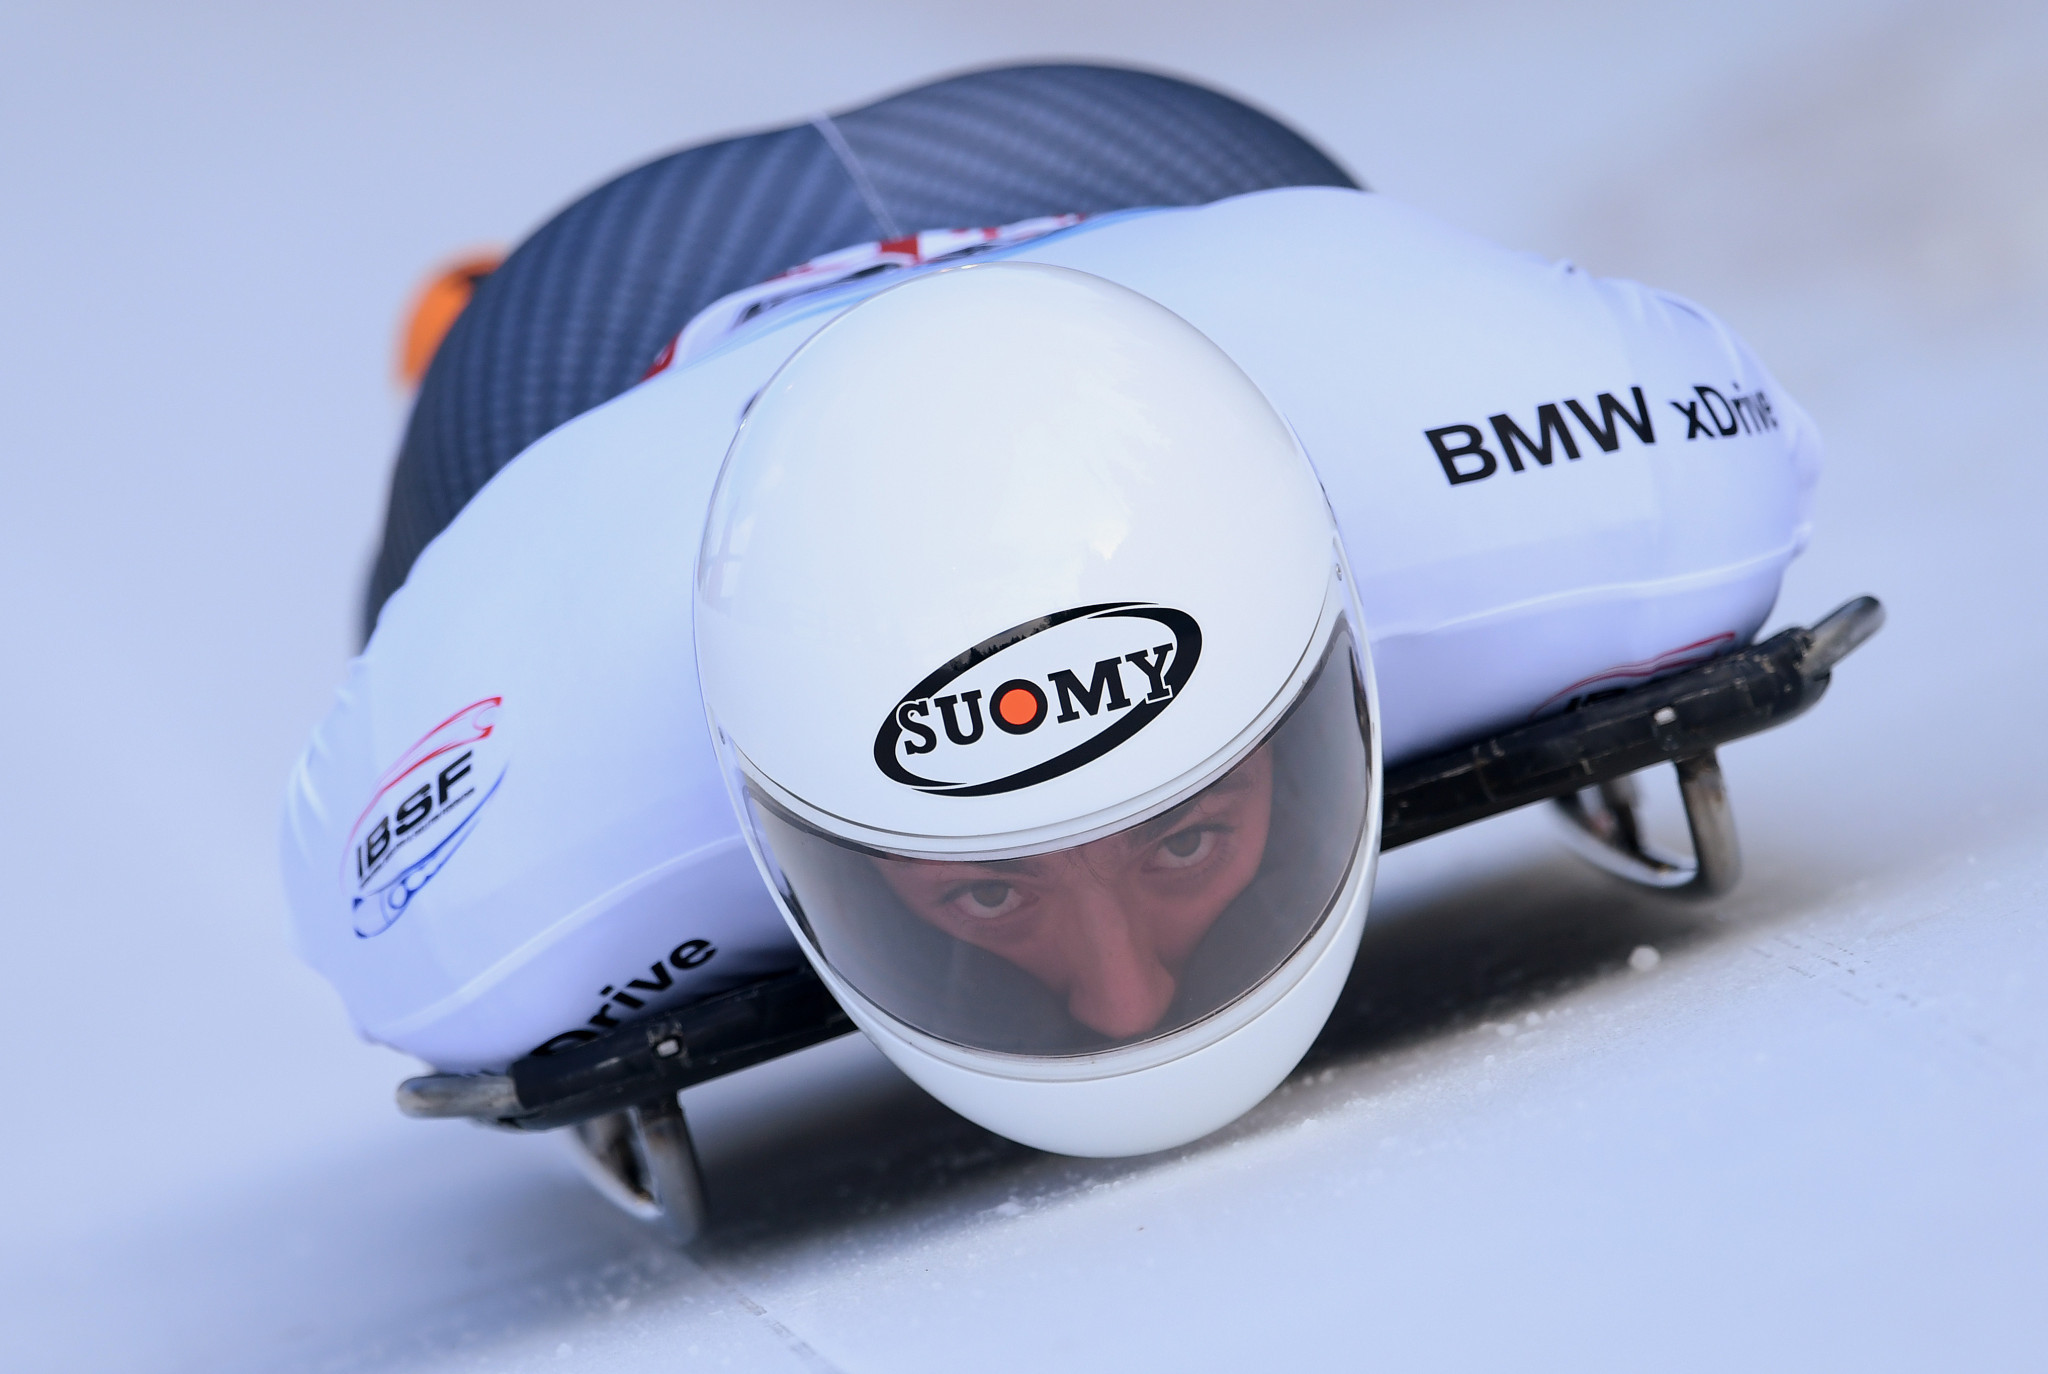 Mattia Gaspari, who won claimed a bronze at this year's International Bobsleigh and Skeleton Federation World Championships, is set to be in the training group ©Getty Images